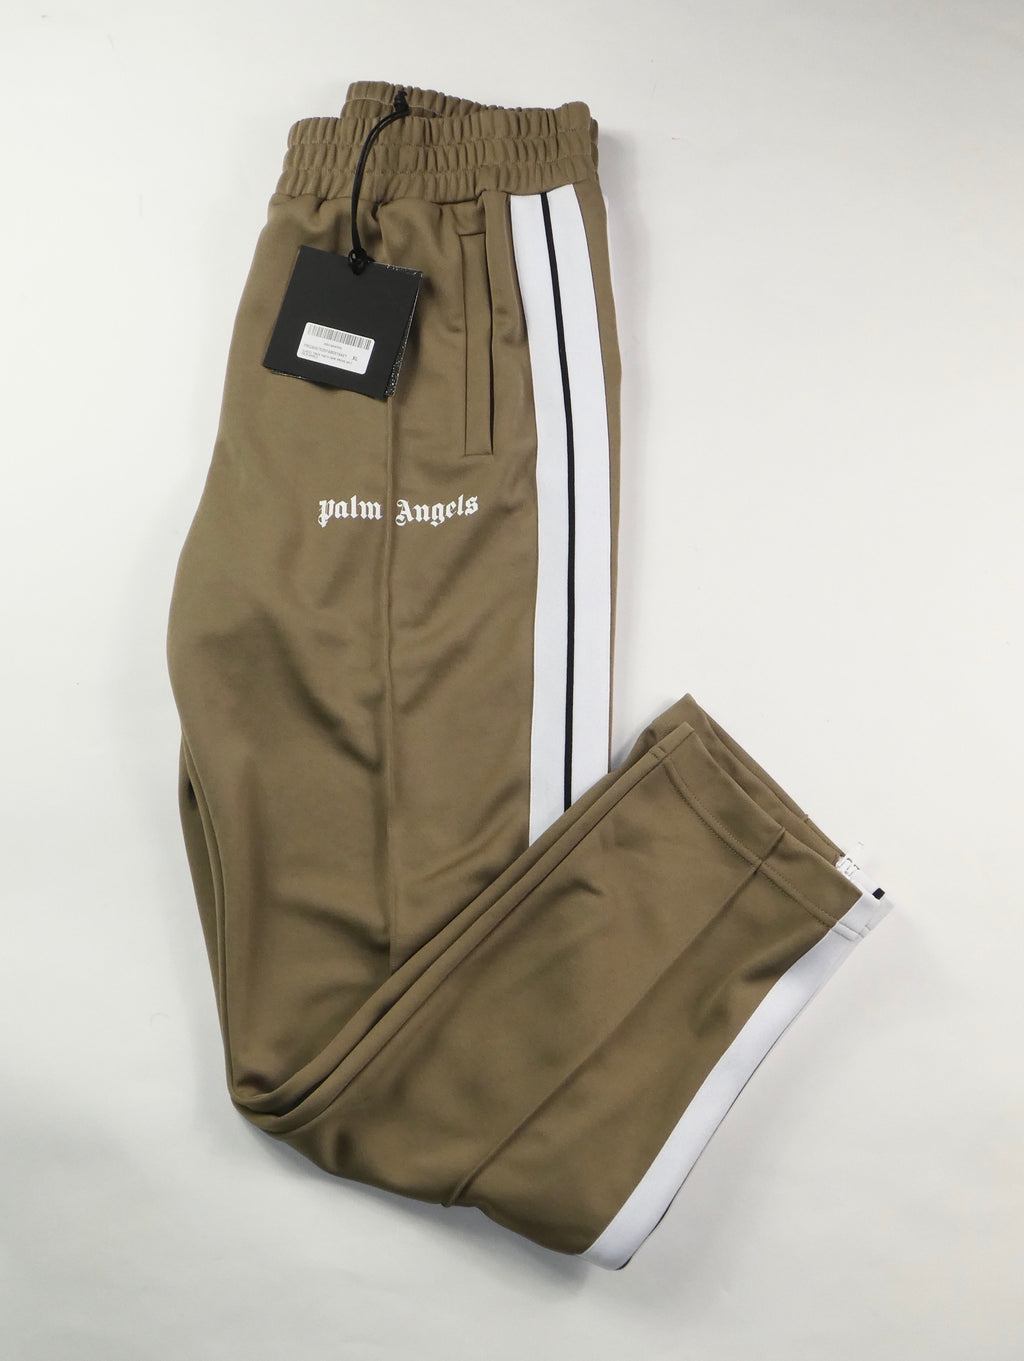 Palm Angels Track Pants BNWT - XL